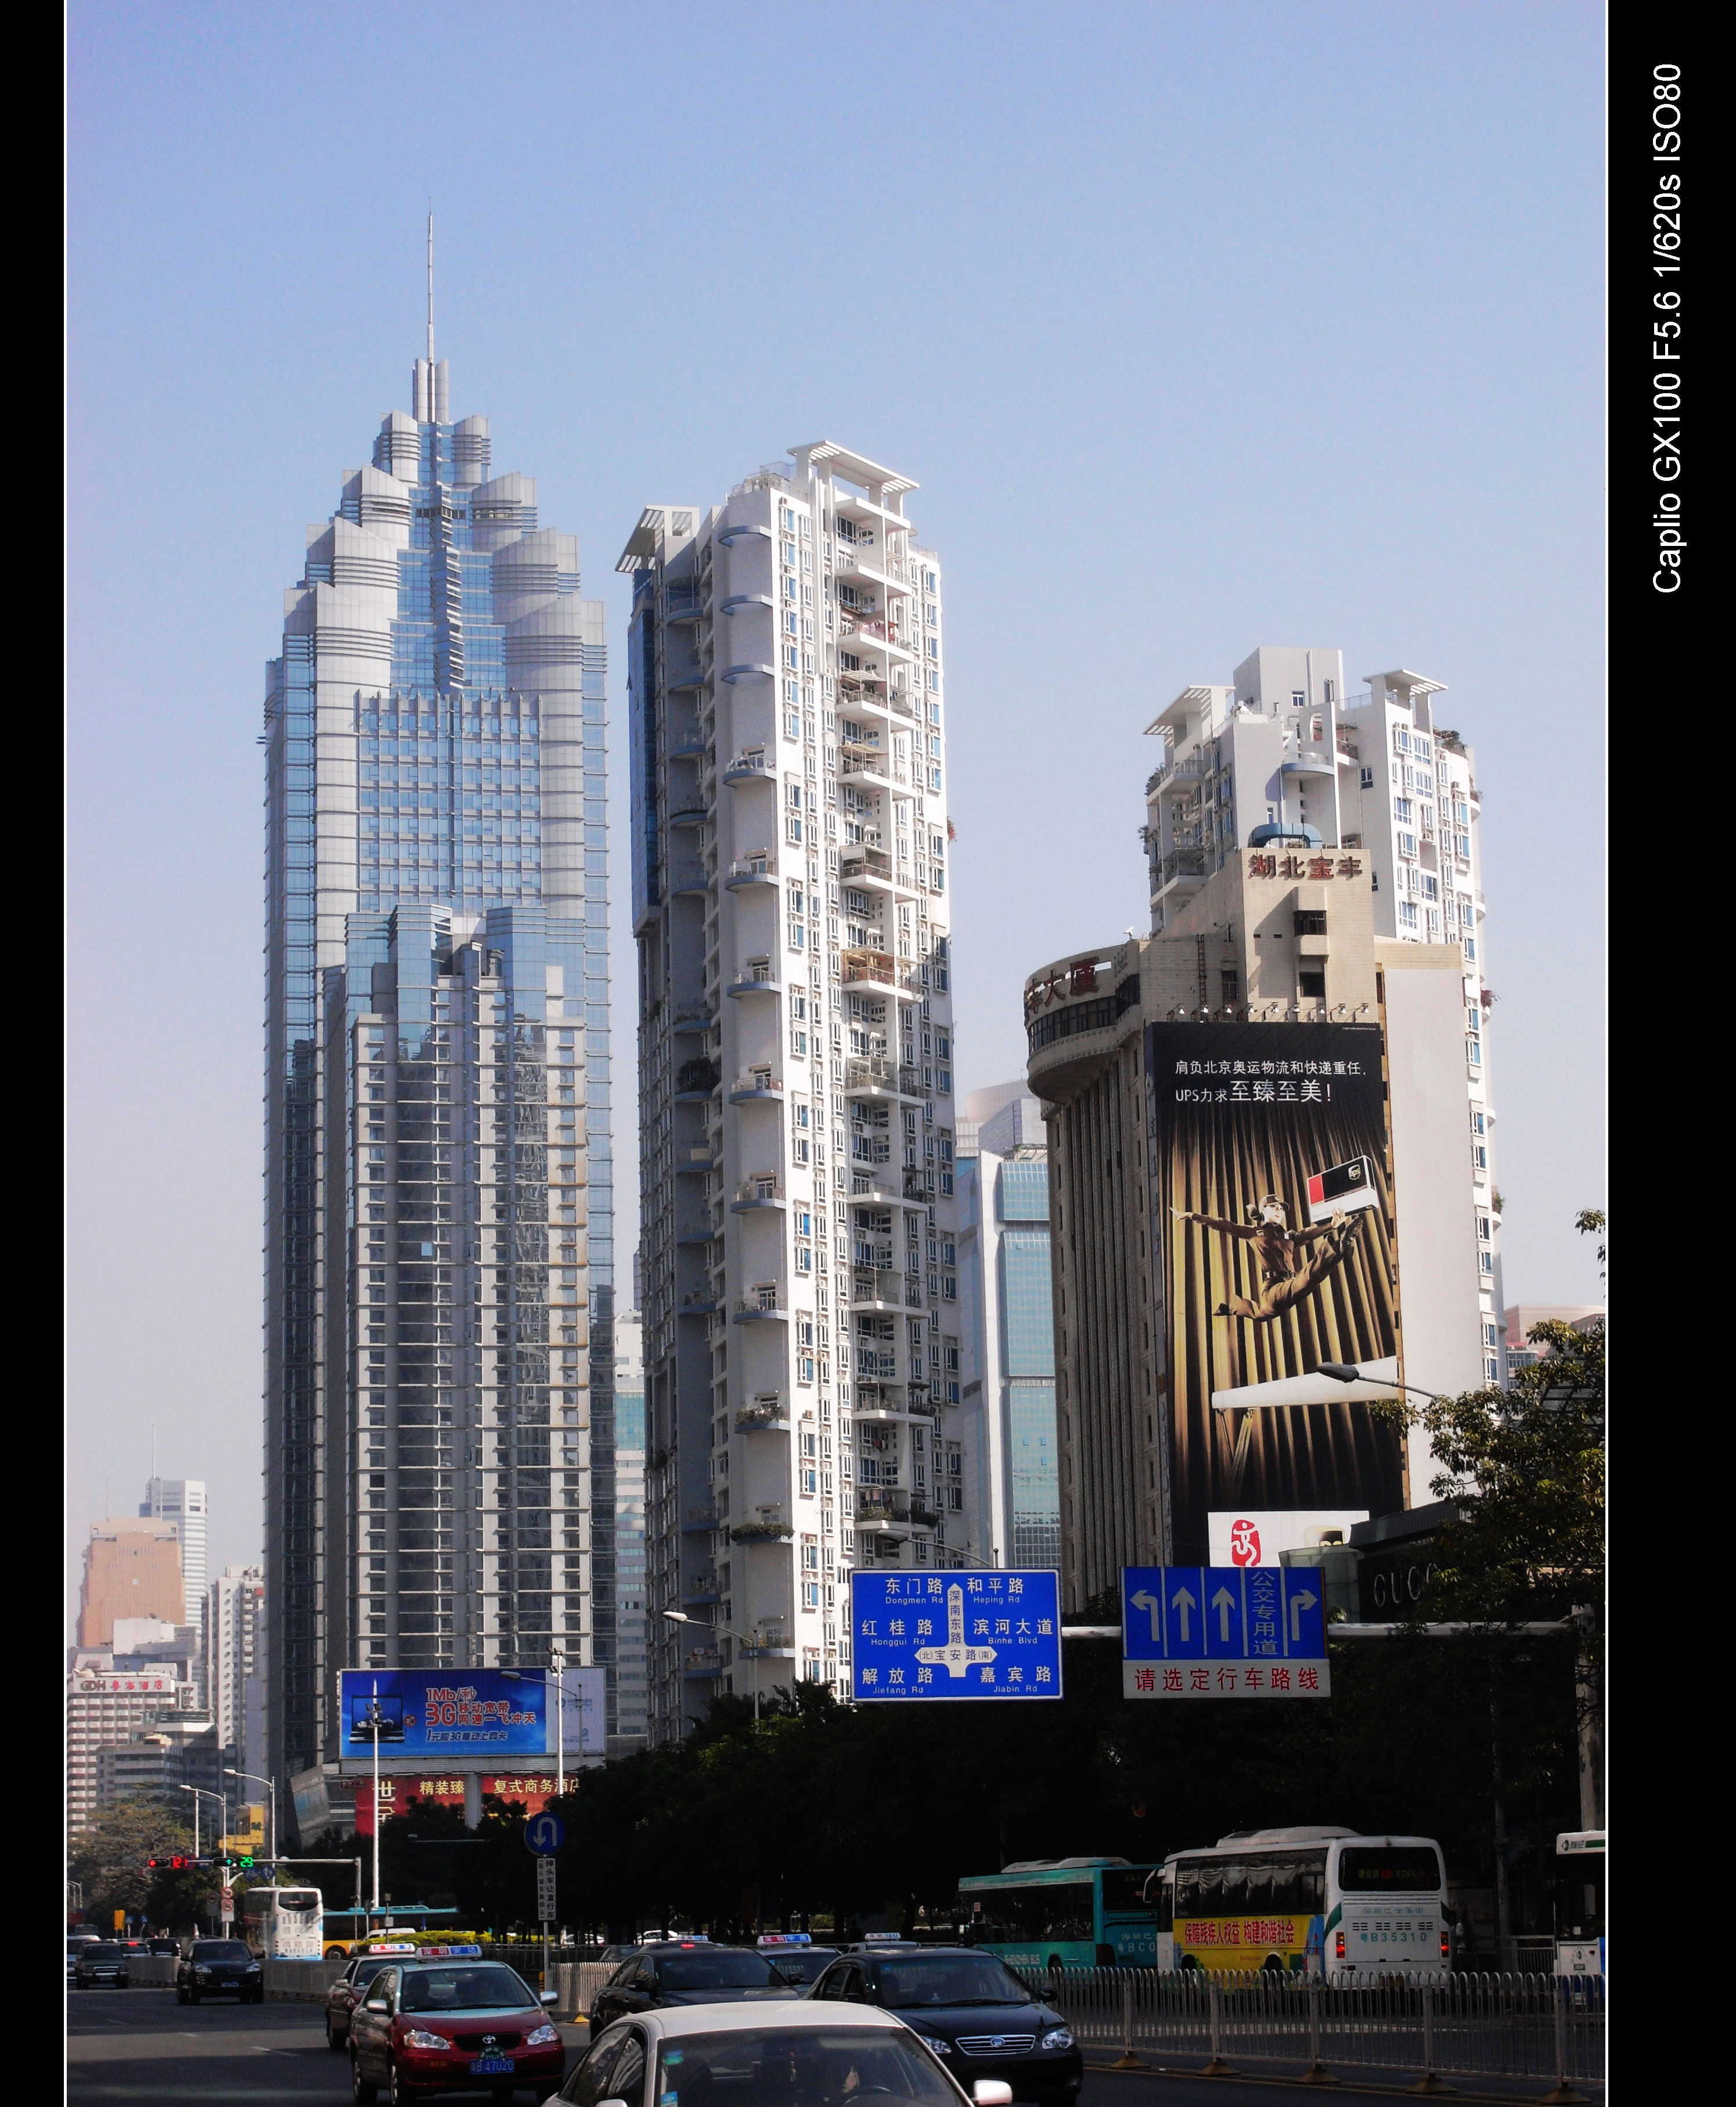 What time is it in shenzhen guangdong china